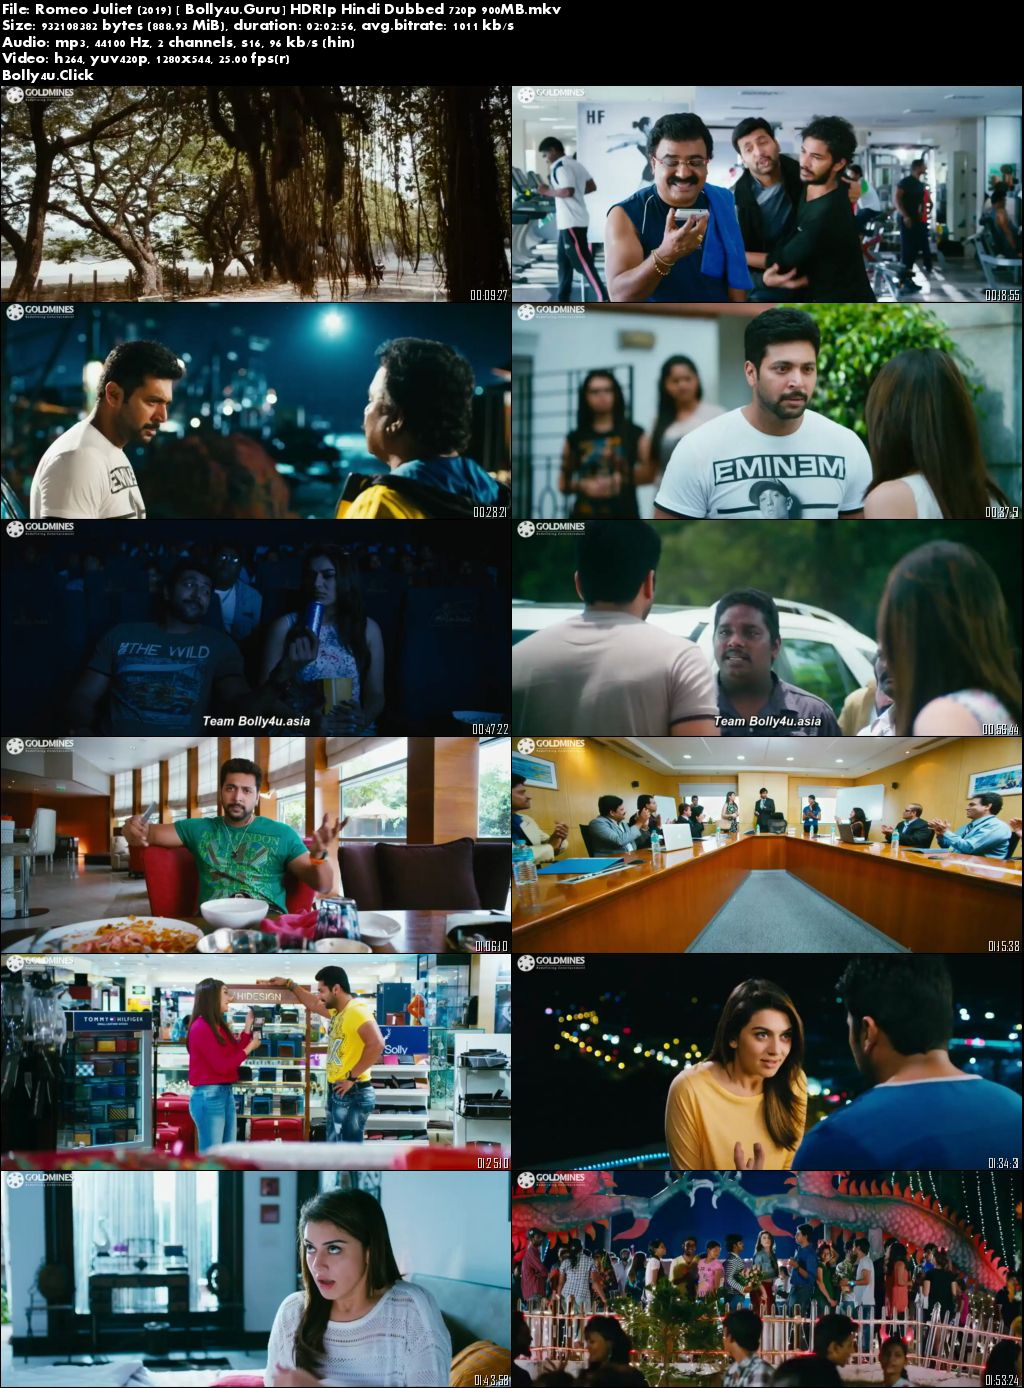 Romeo Juliet 2019 HDRip 900MB Hindi Dubbed 720p Download